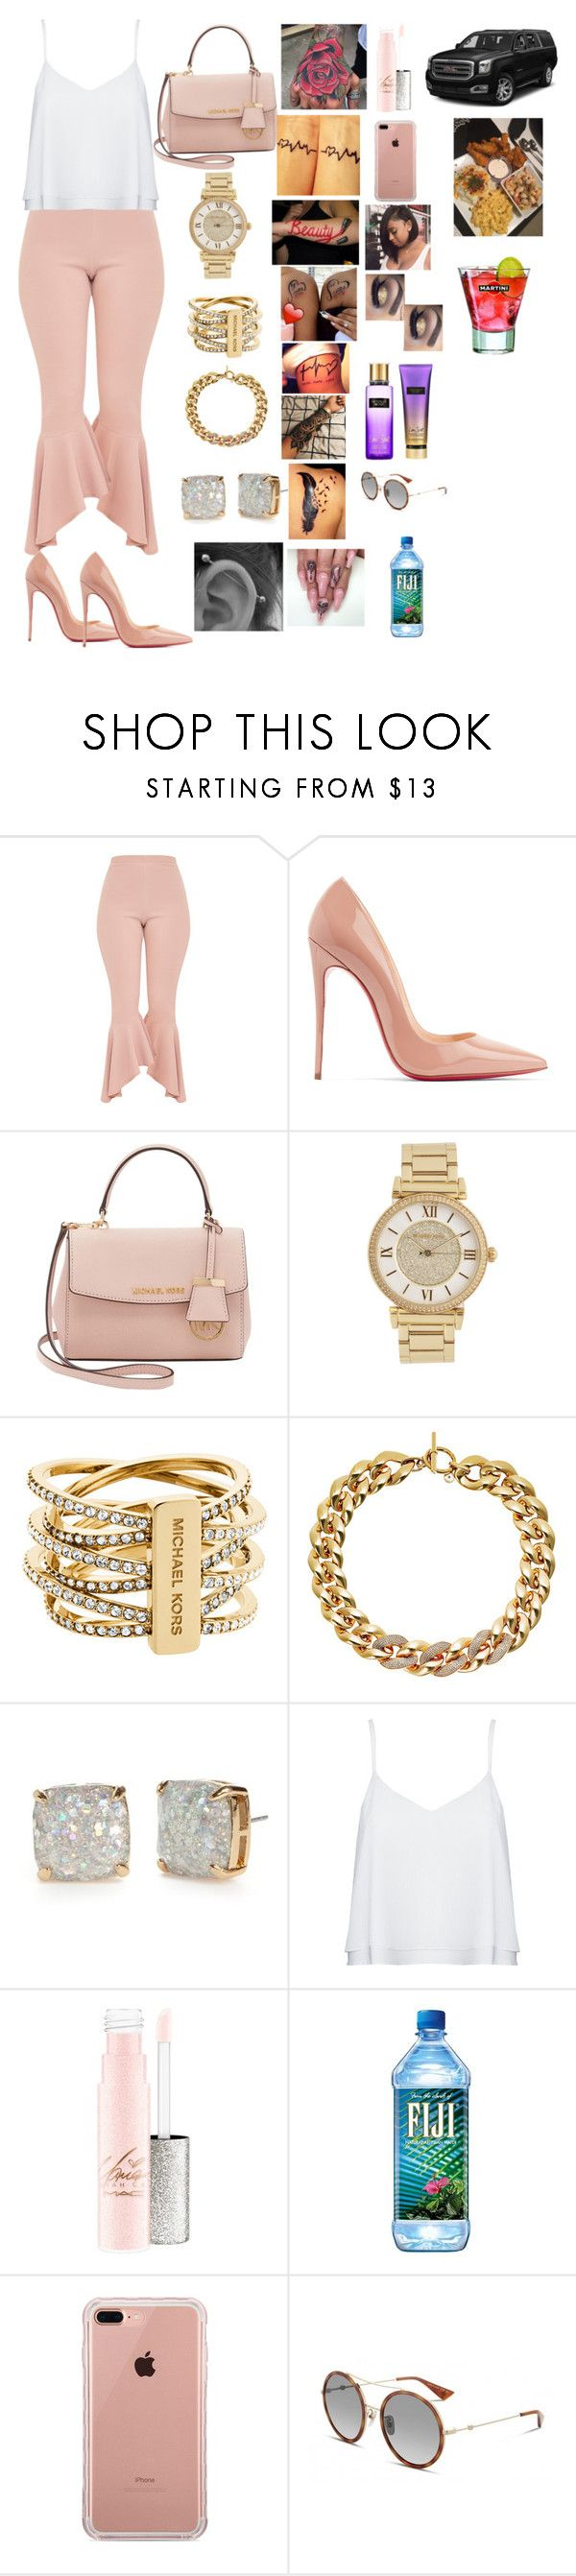 """""""Lunch with my two baby nieces😍😩"""" by manija-jones on Polyvore featuring Christian Louboutin, Michael Kors, Kate Spade, Alice + Olivia, Belkin, Gucci and Victoria's Secret"""